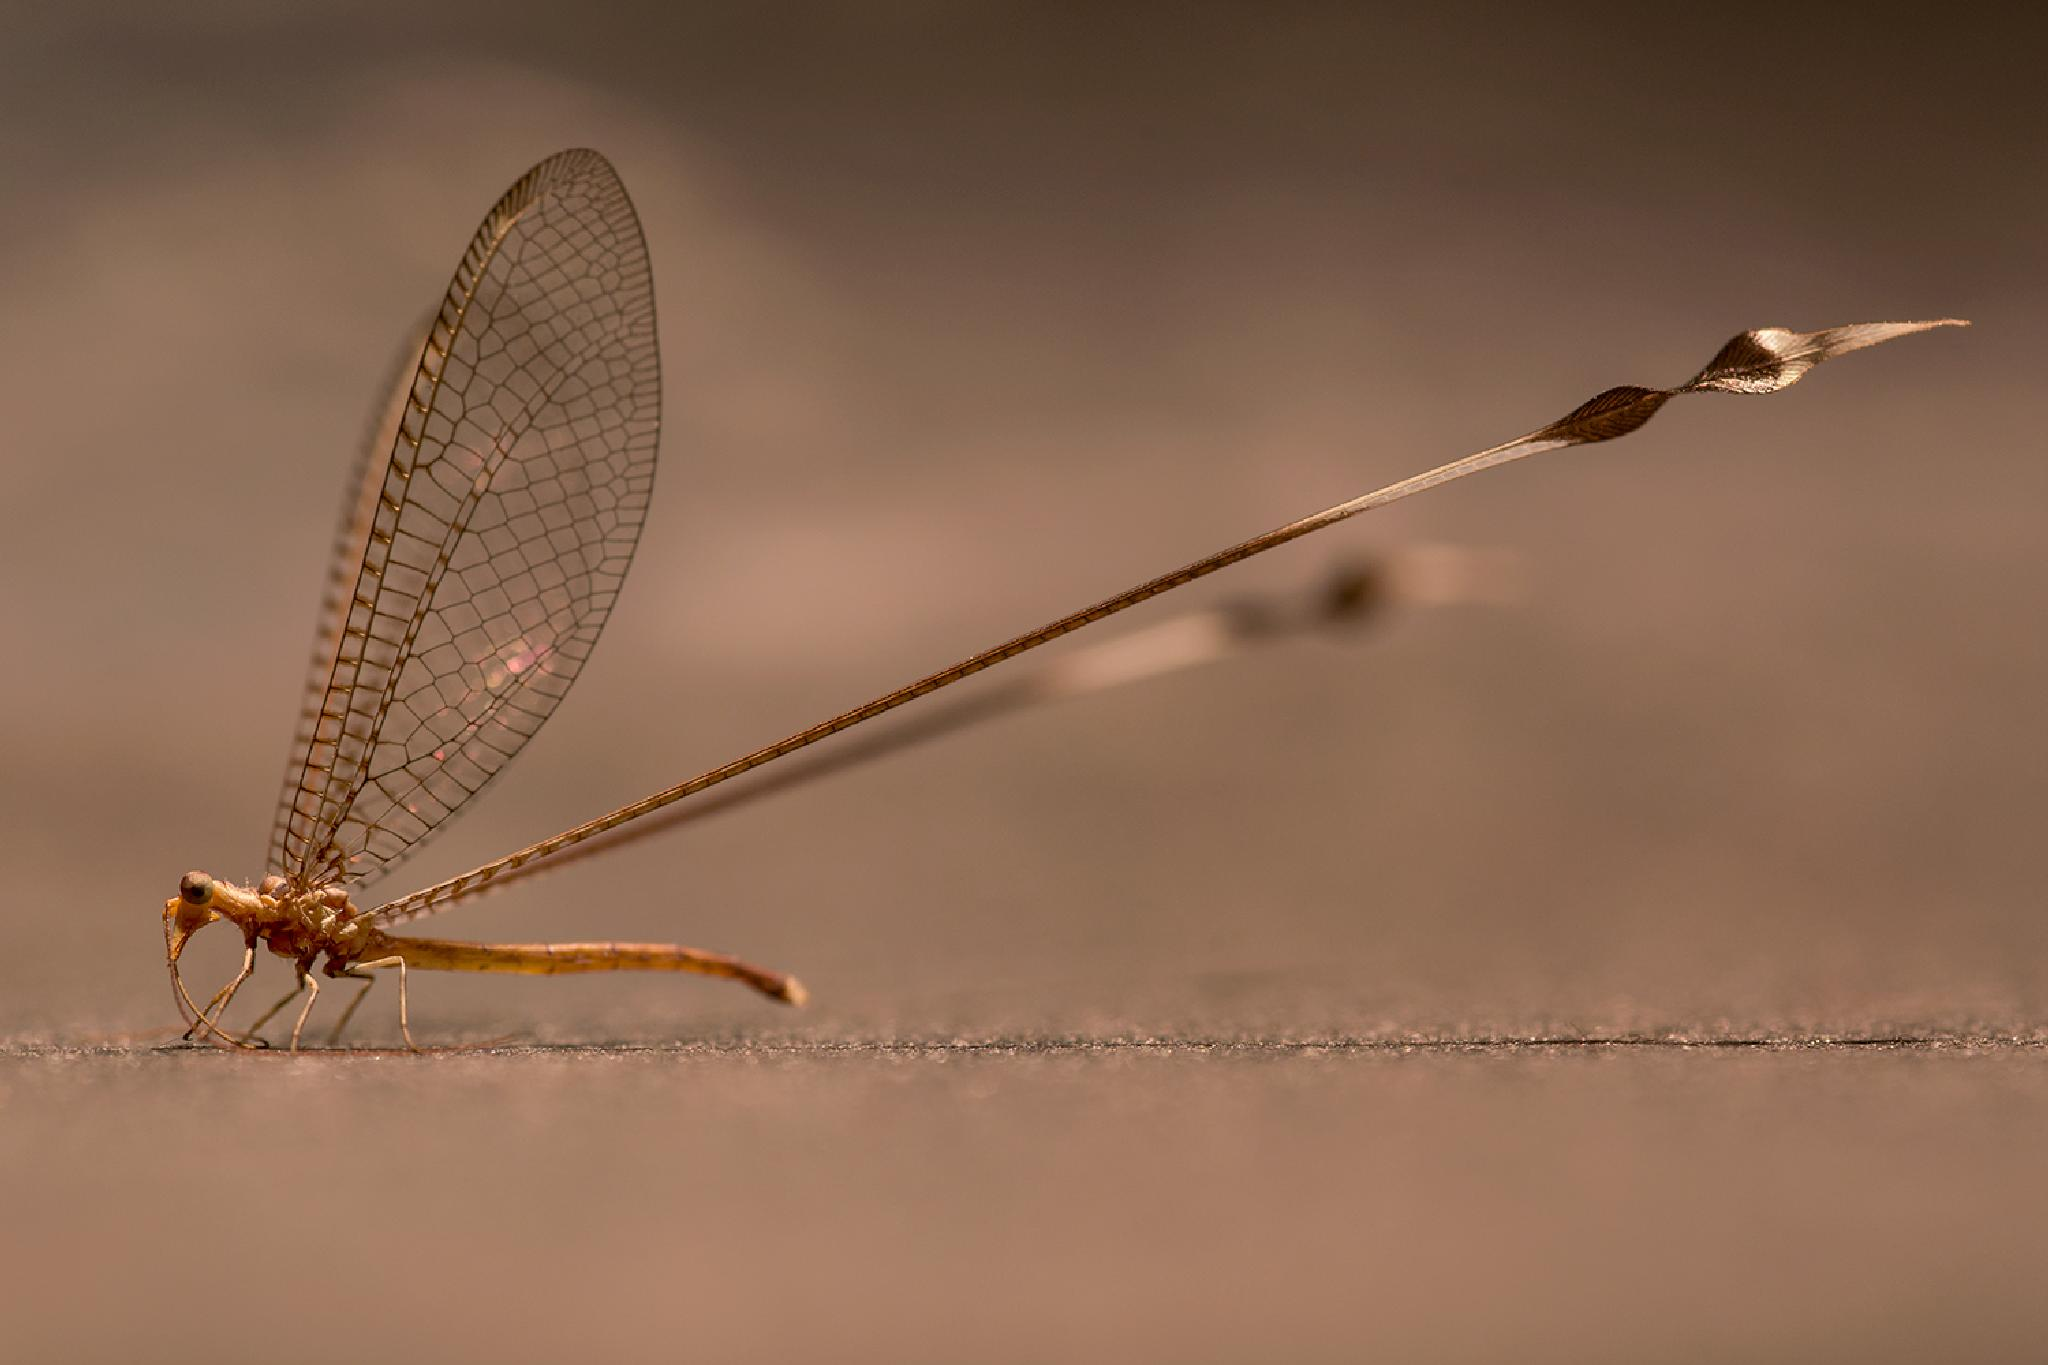 Dragonfly by Ed Peeters Photography